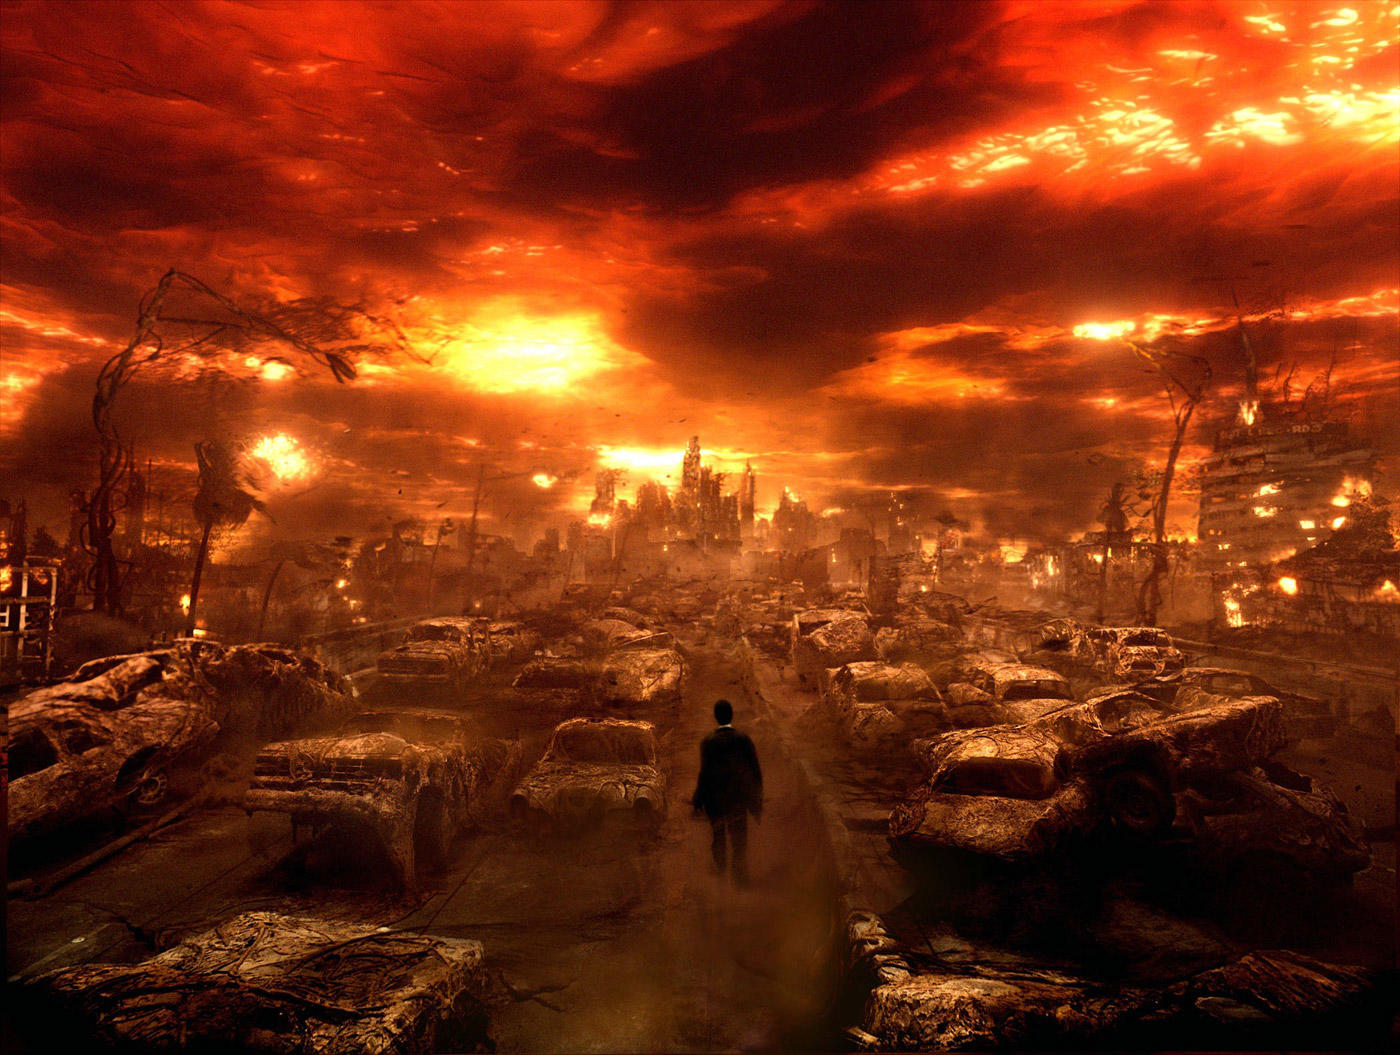 visions of hell in the movies fandango